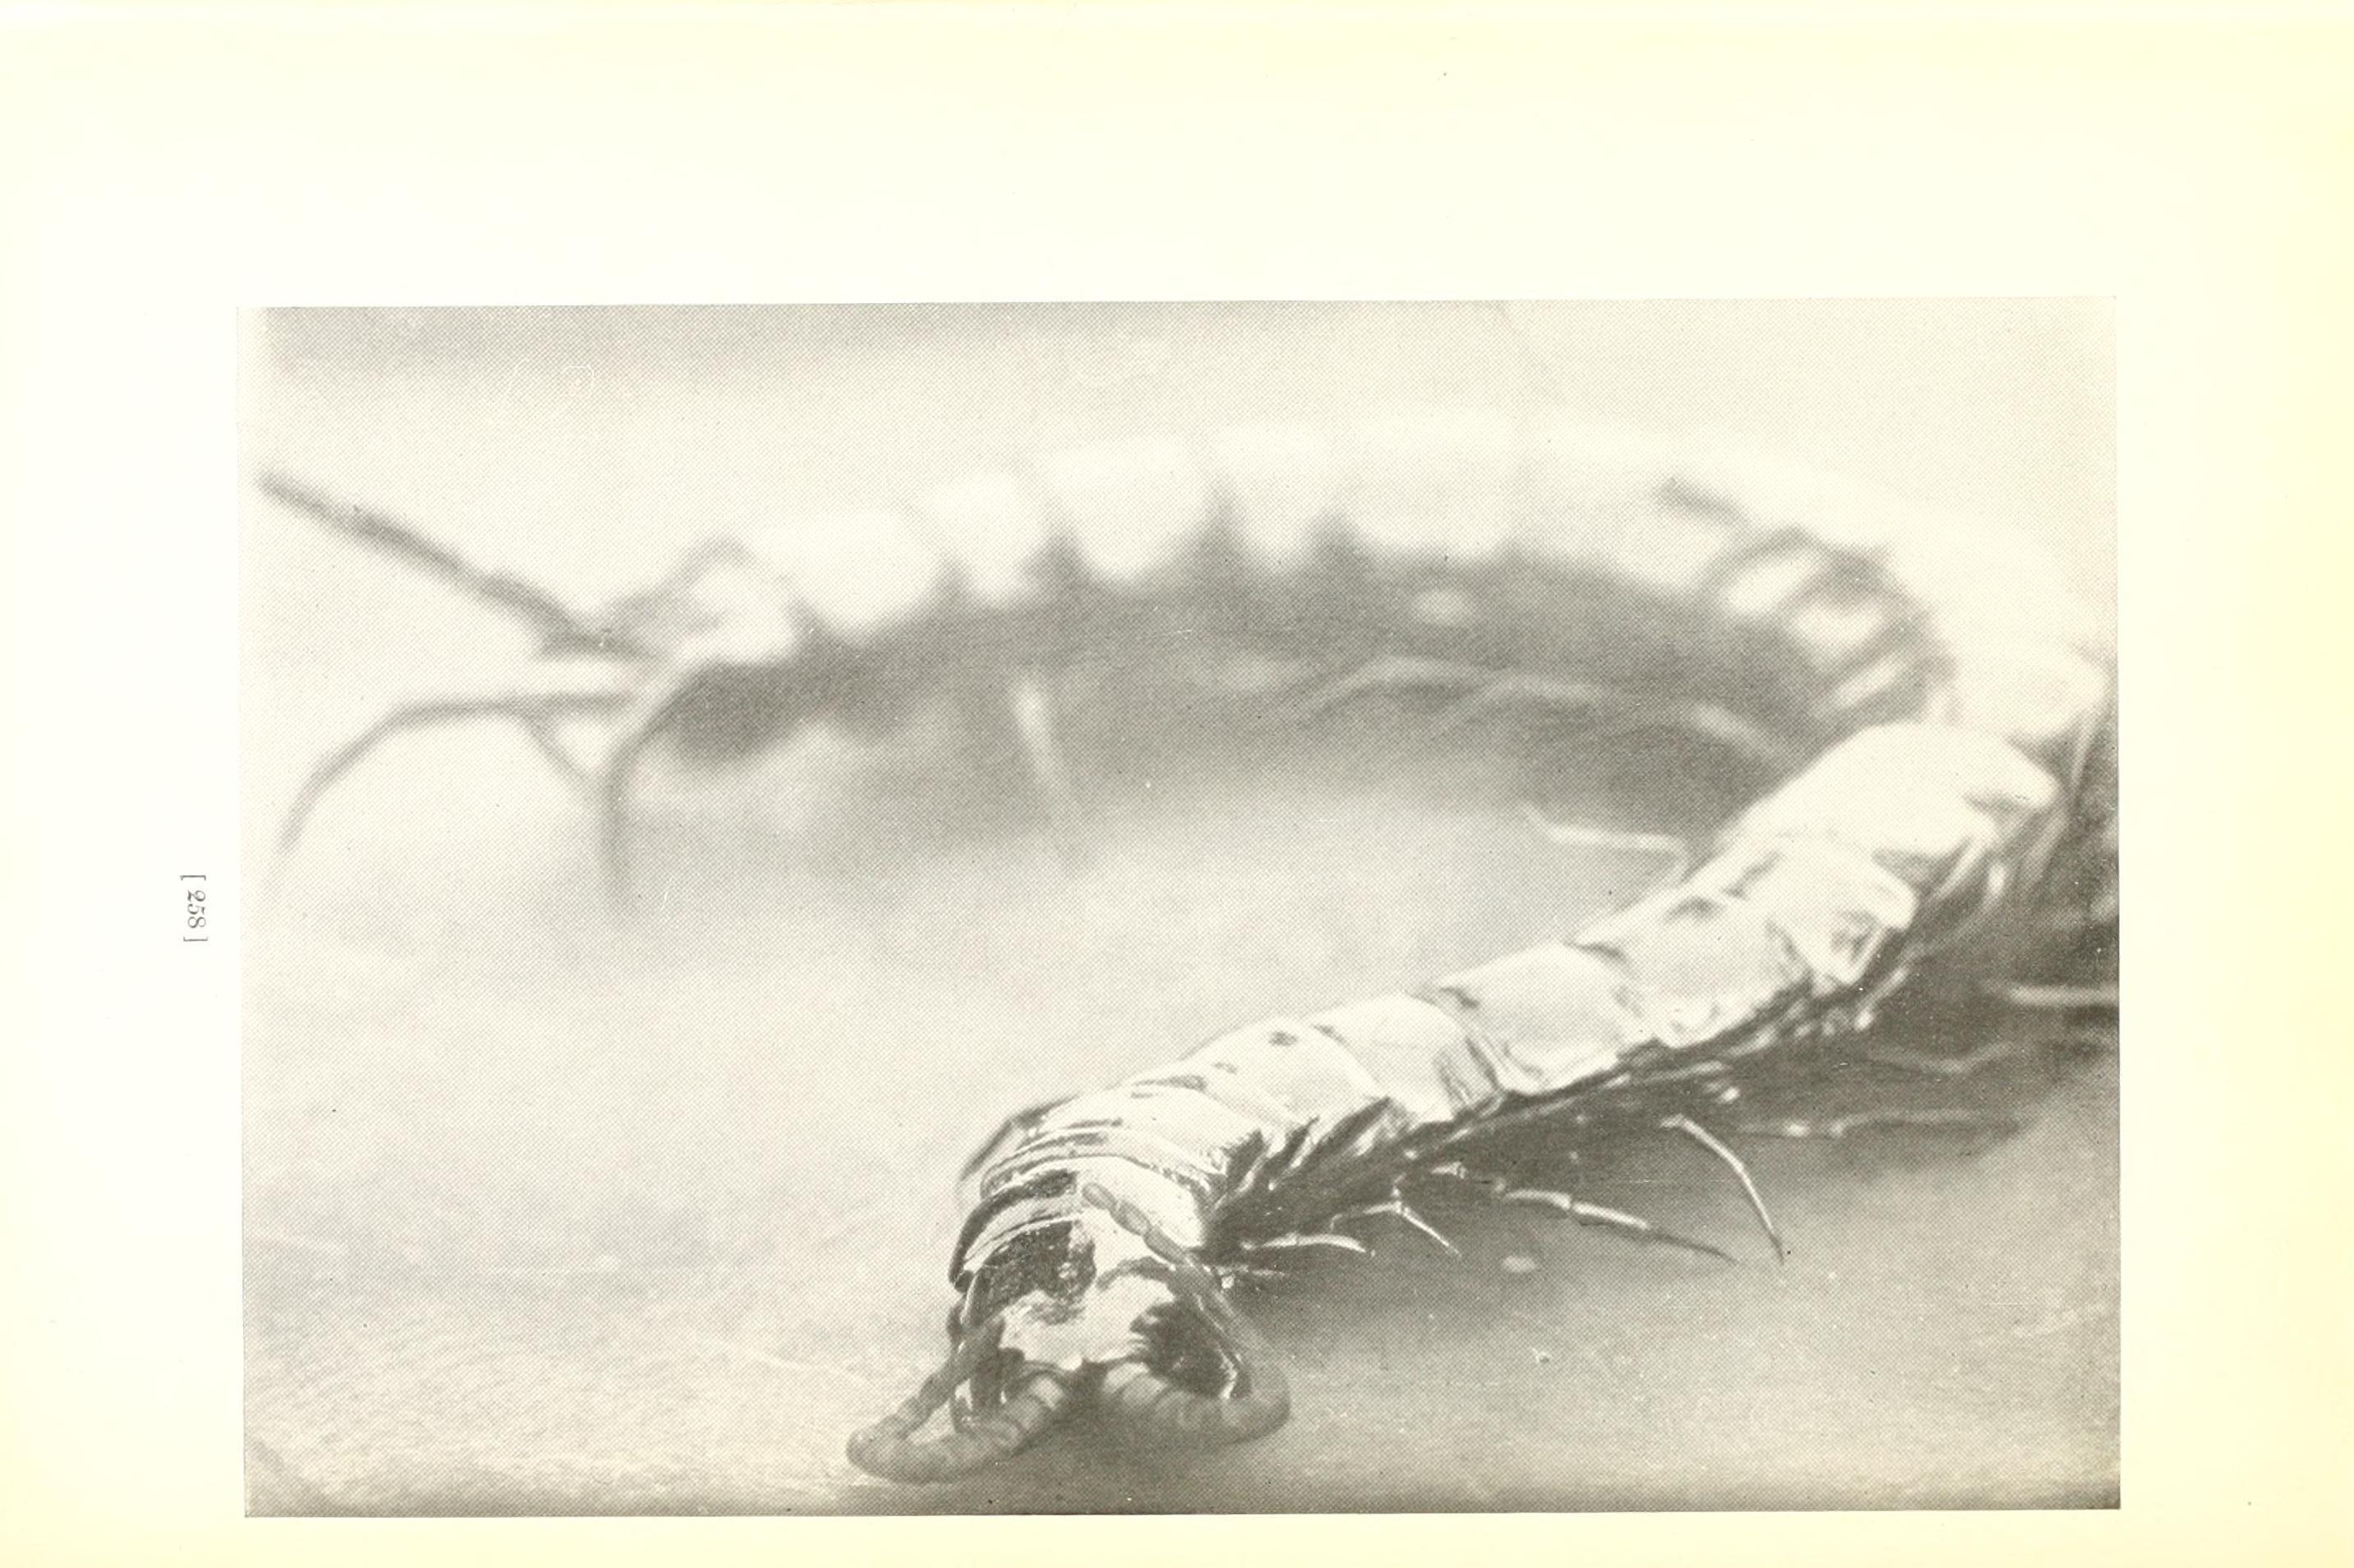 Image of Scolopendra